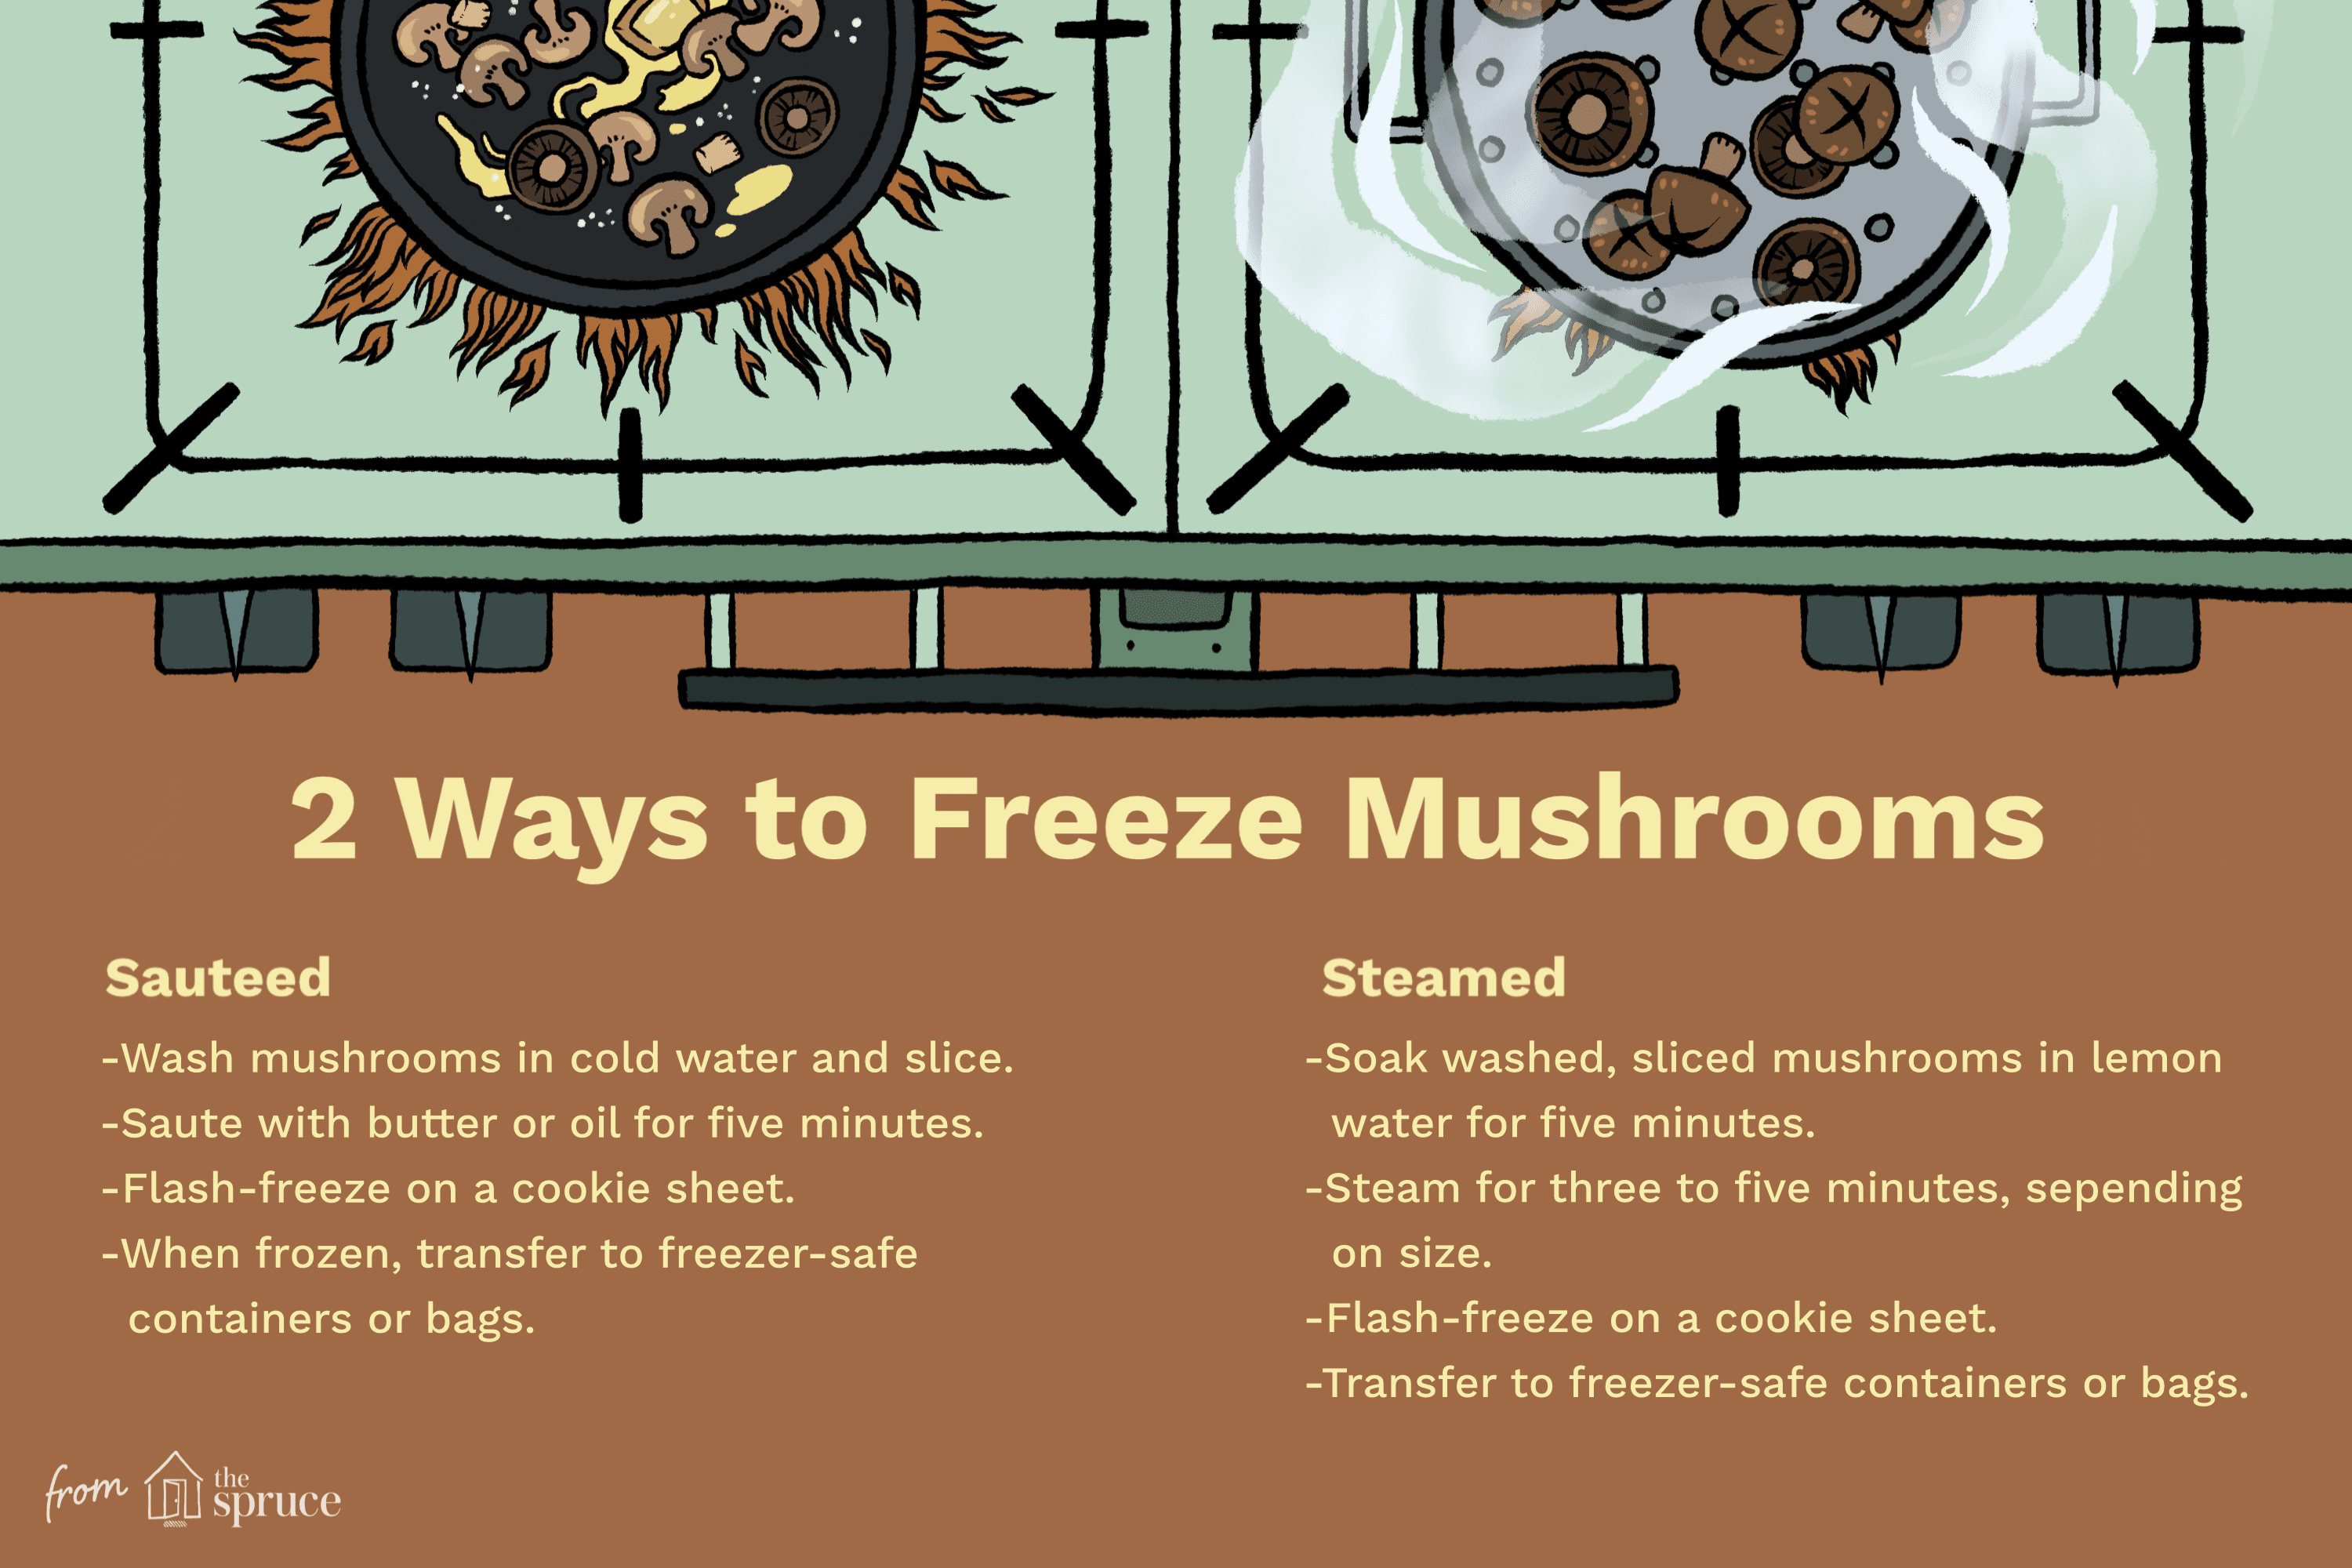 How To Freeze Mushrooms The Right Way,Call Center Work From Home Philippines